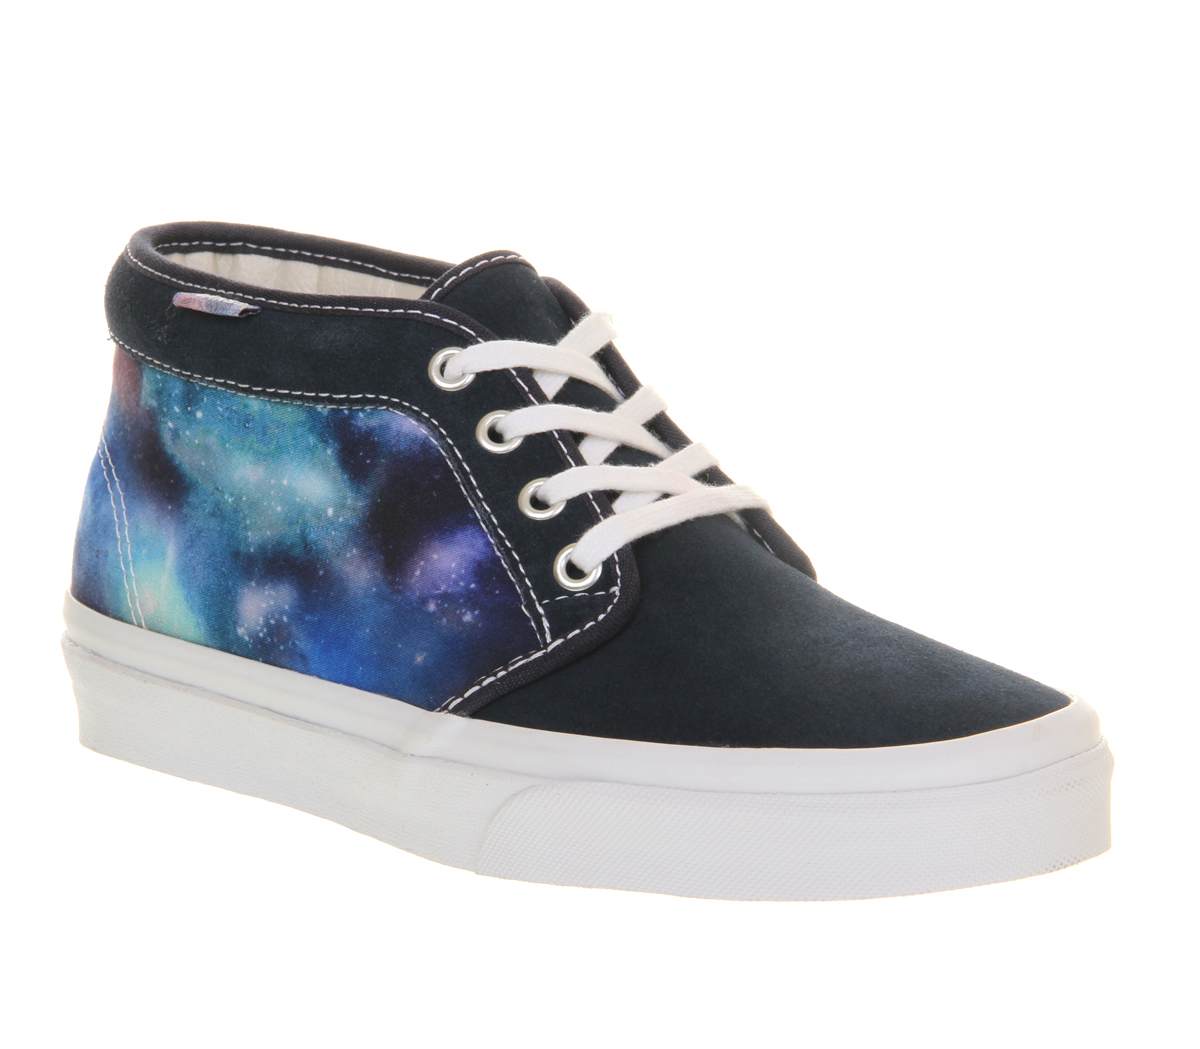 Vans-Chukka-Boot-NAVY-GALAXY-EXCLUSIVE-Trainers-Shoes